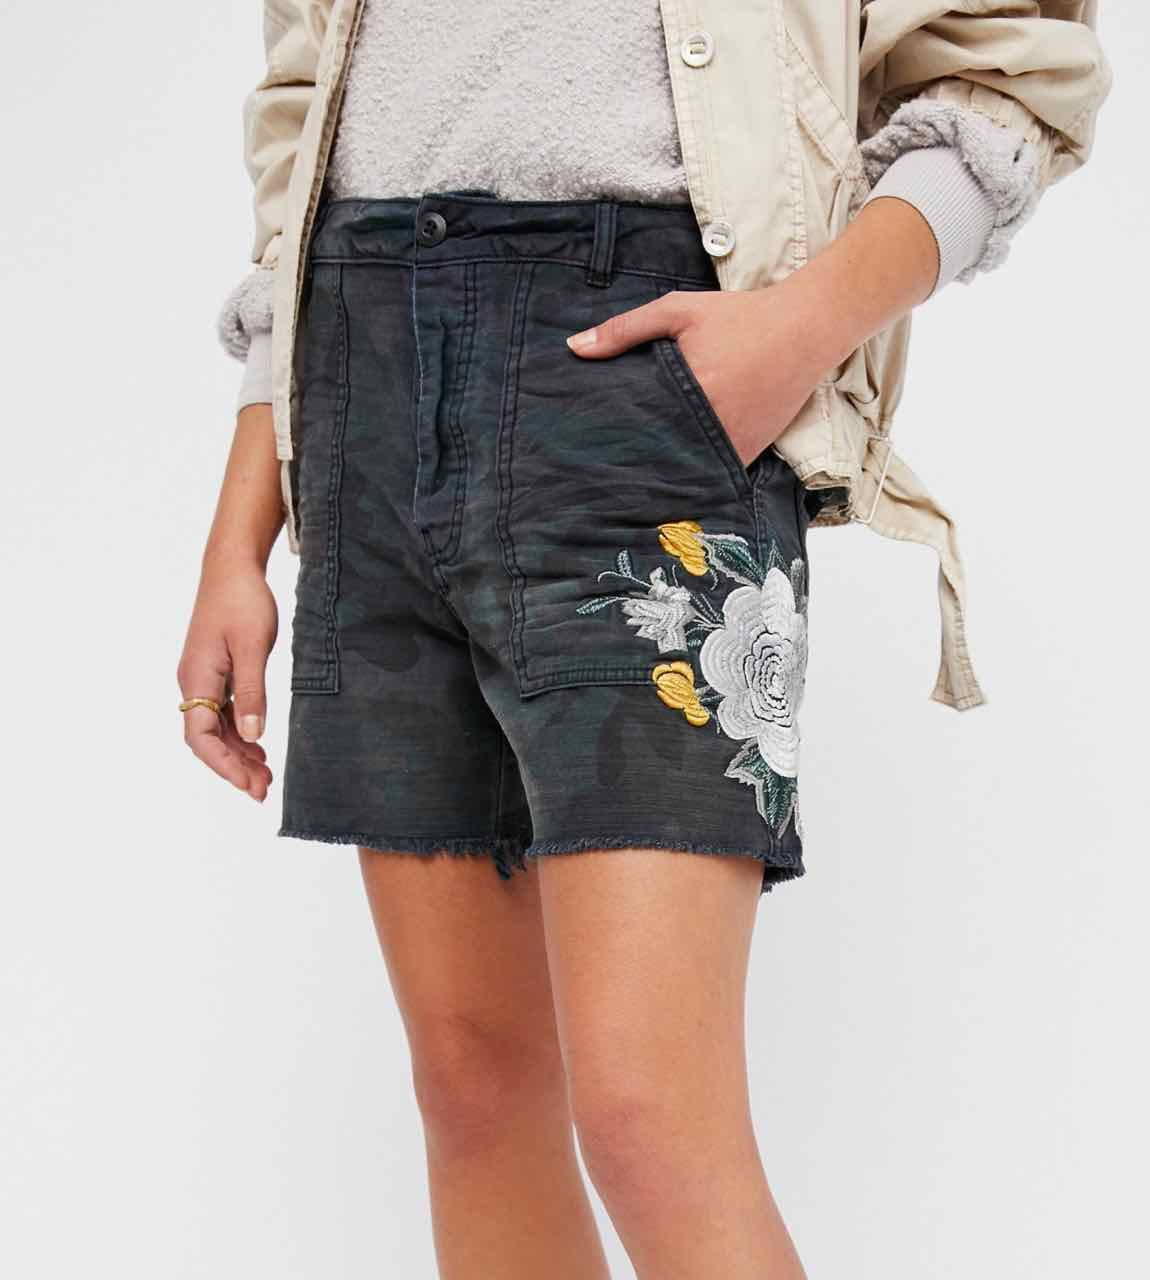 df8b3d7912 Free People Embroidered Scout Shorts OB585957 | Buy Online Canada US